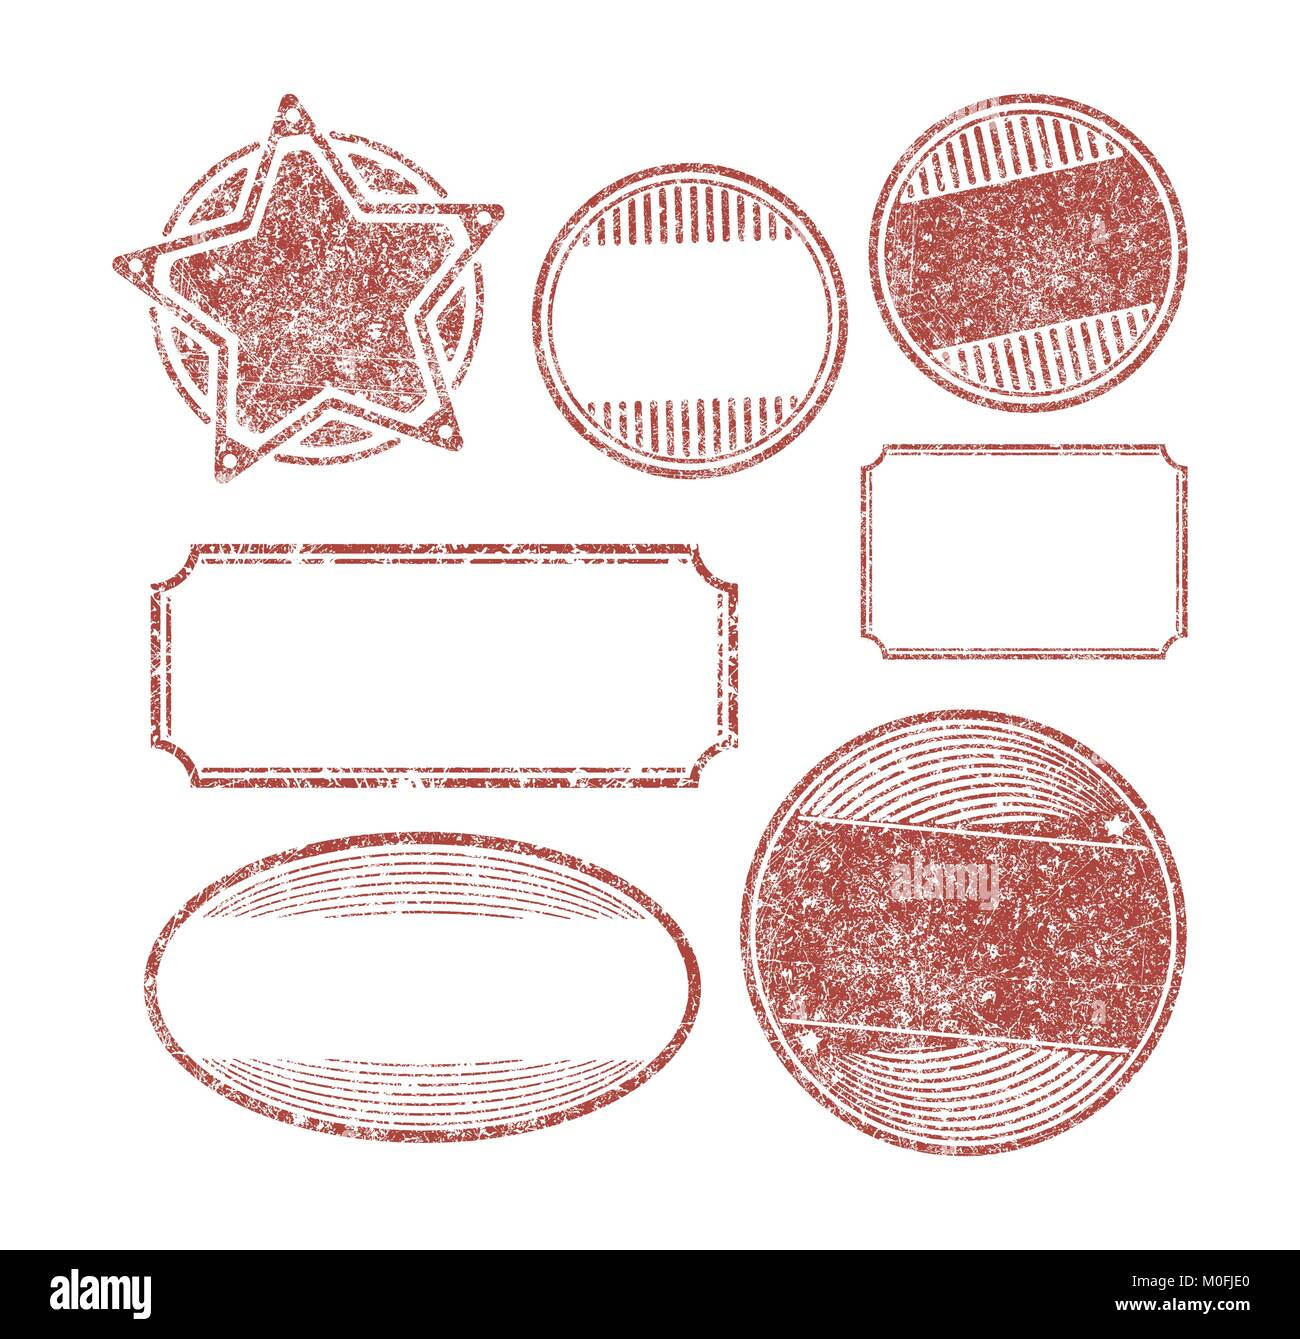 set of 7 rubber stamps templates stock vector art illustration